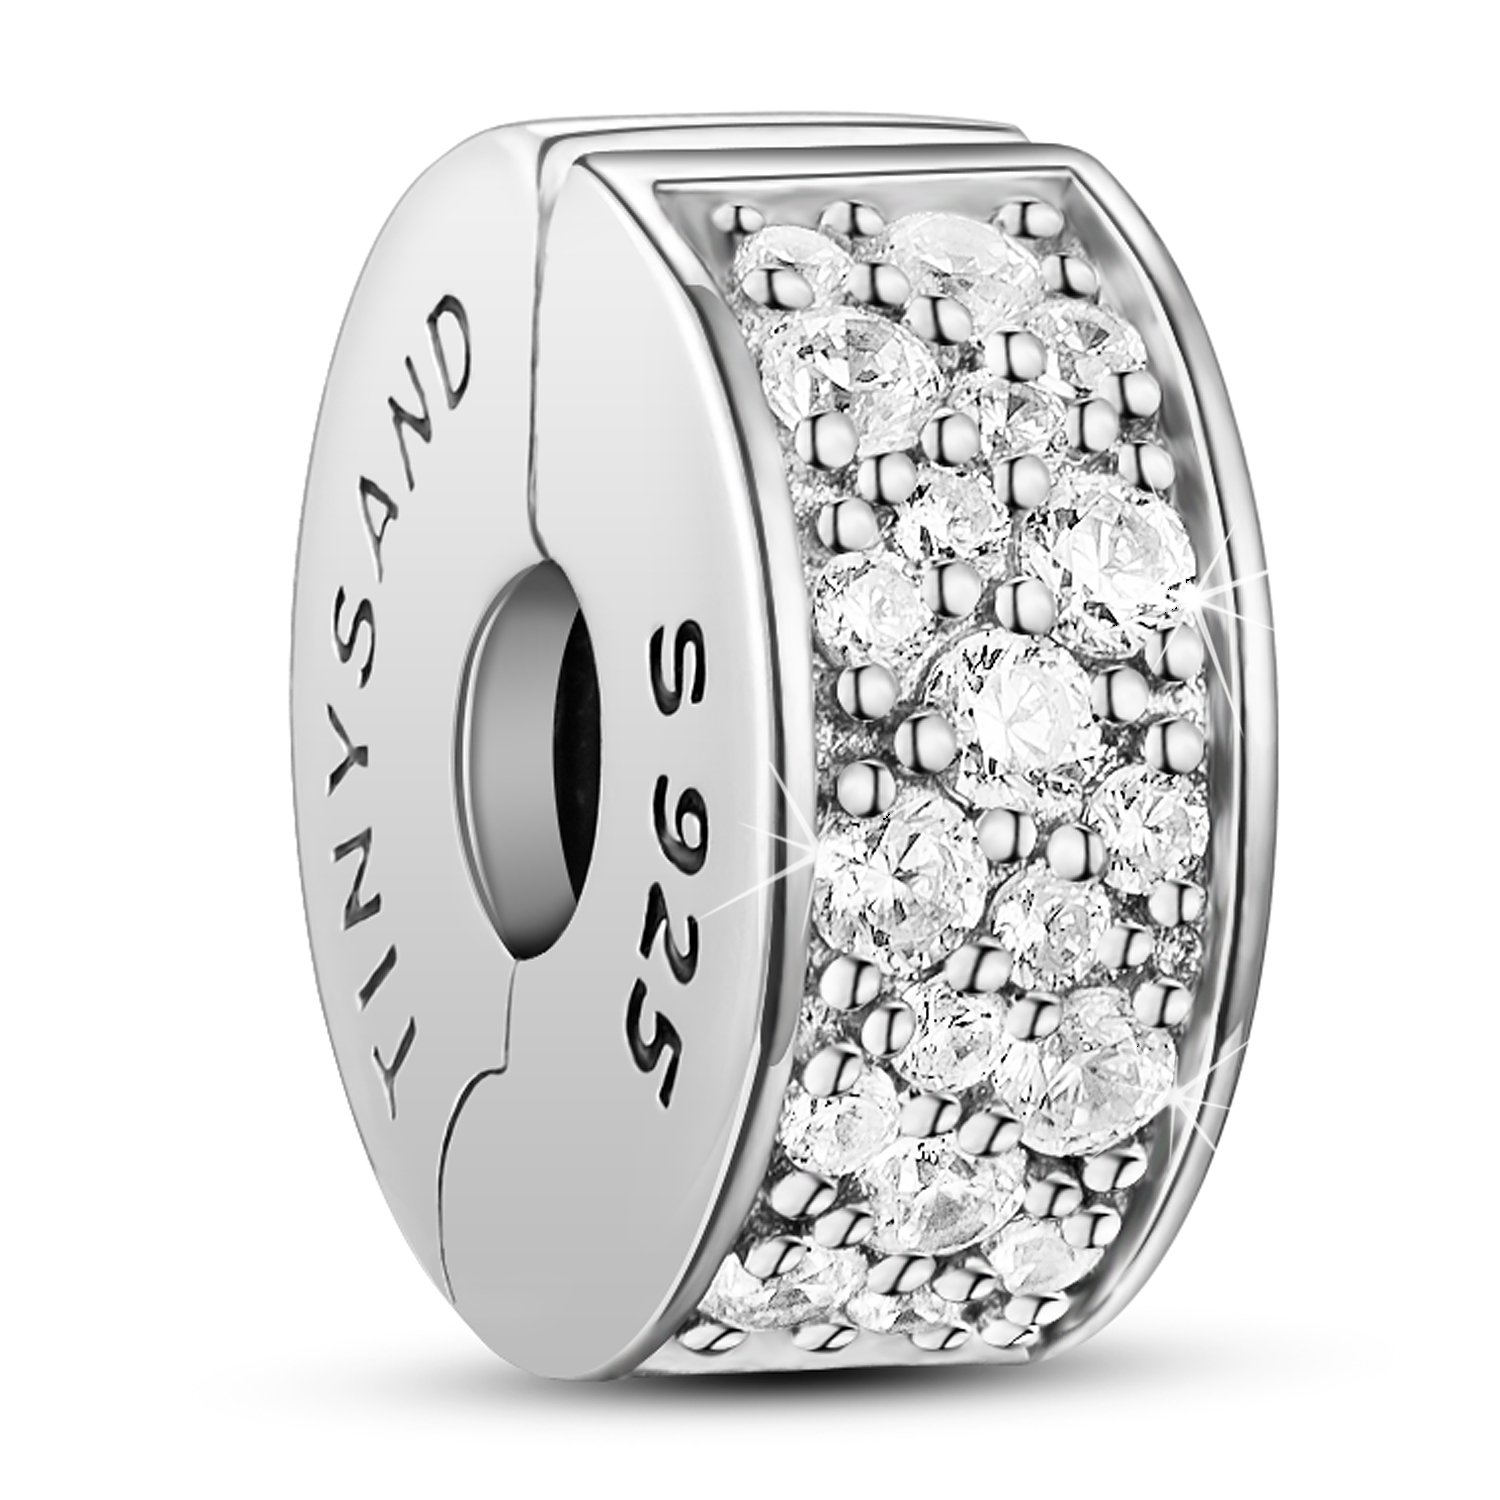 TINYSAND 925 Sterling Silver Dazzling CZ Clip Lock Stopper Spacers Charms Beads Fits European Snake Bracelet Bangle Unique Jewelry for Girls Women by TINYSAND (Image #1)